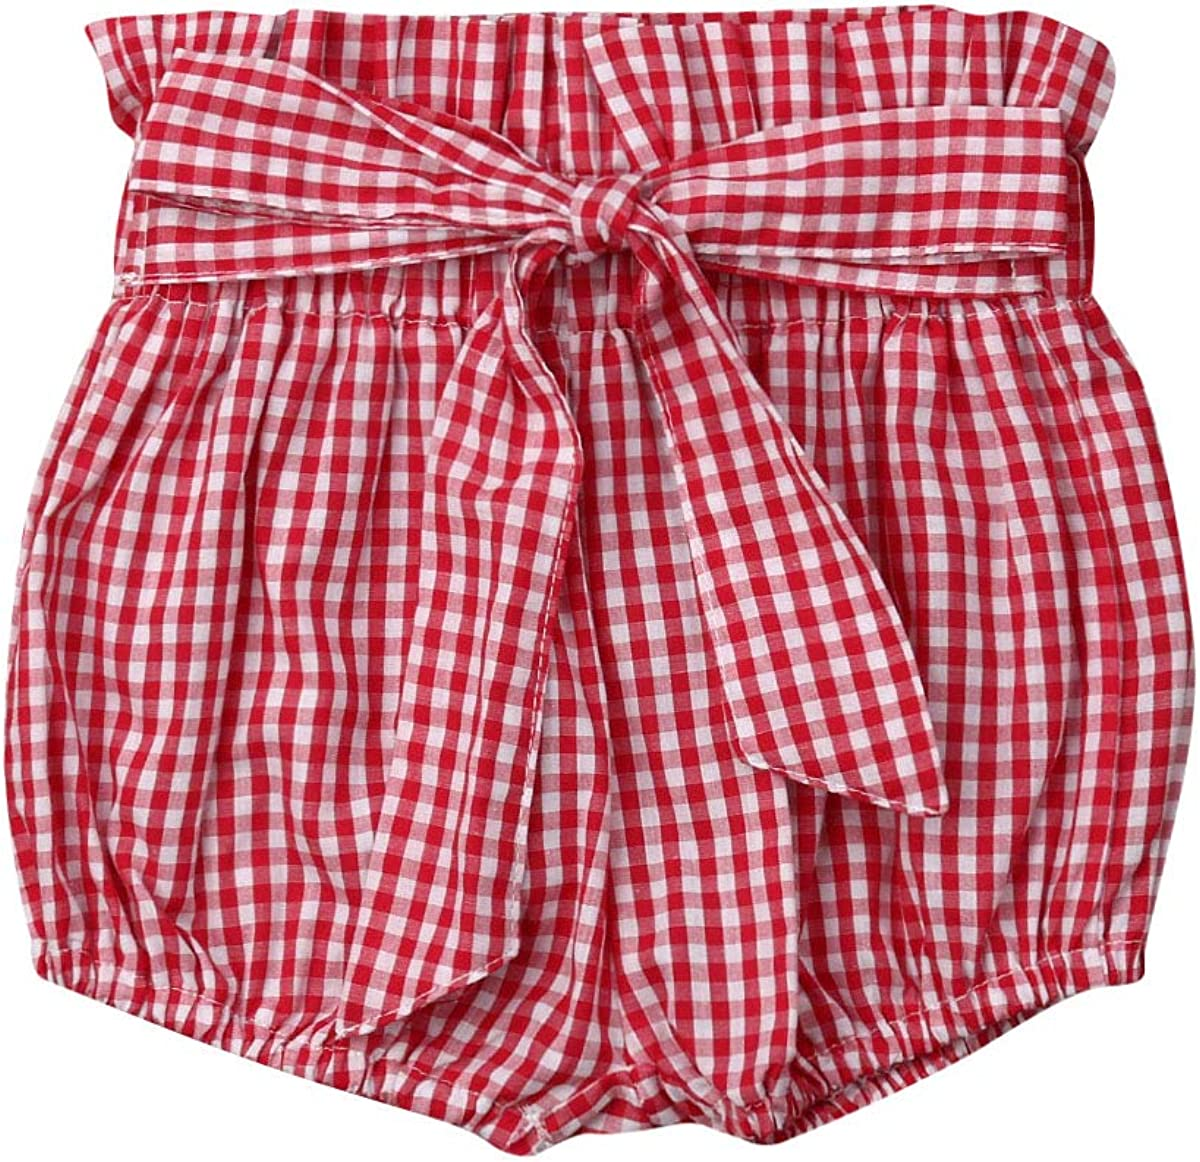 Toddler Infant Baby Girl Floral Plaid Dots Shorts with Belt Bloomer Bottoms Summer Shorts